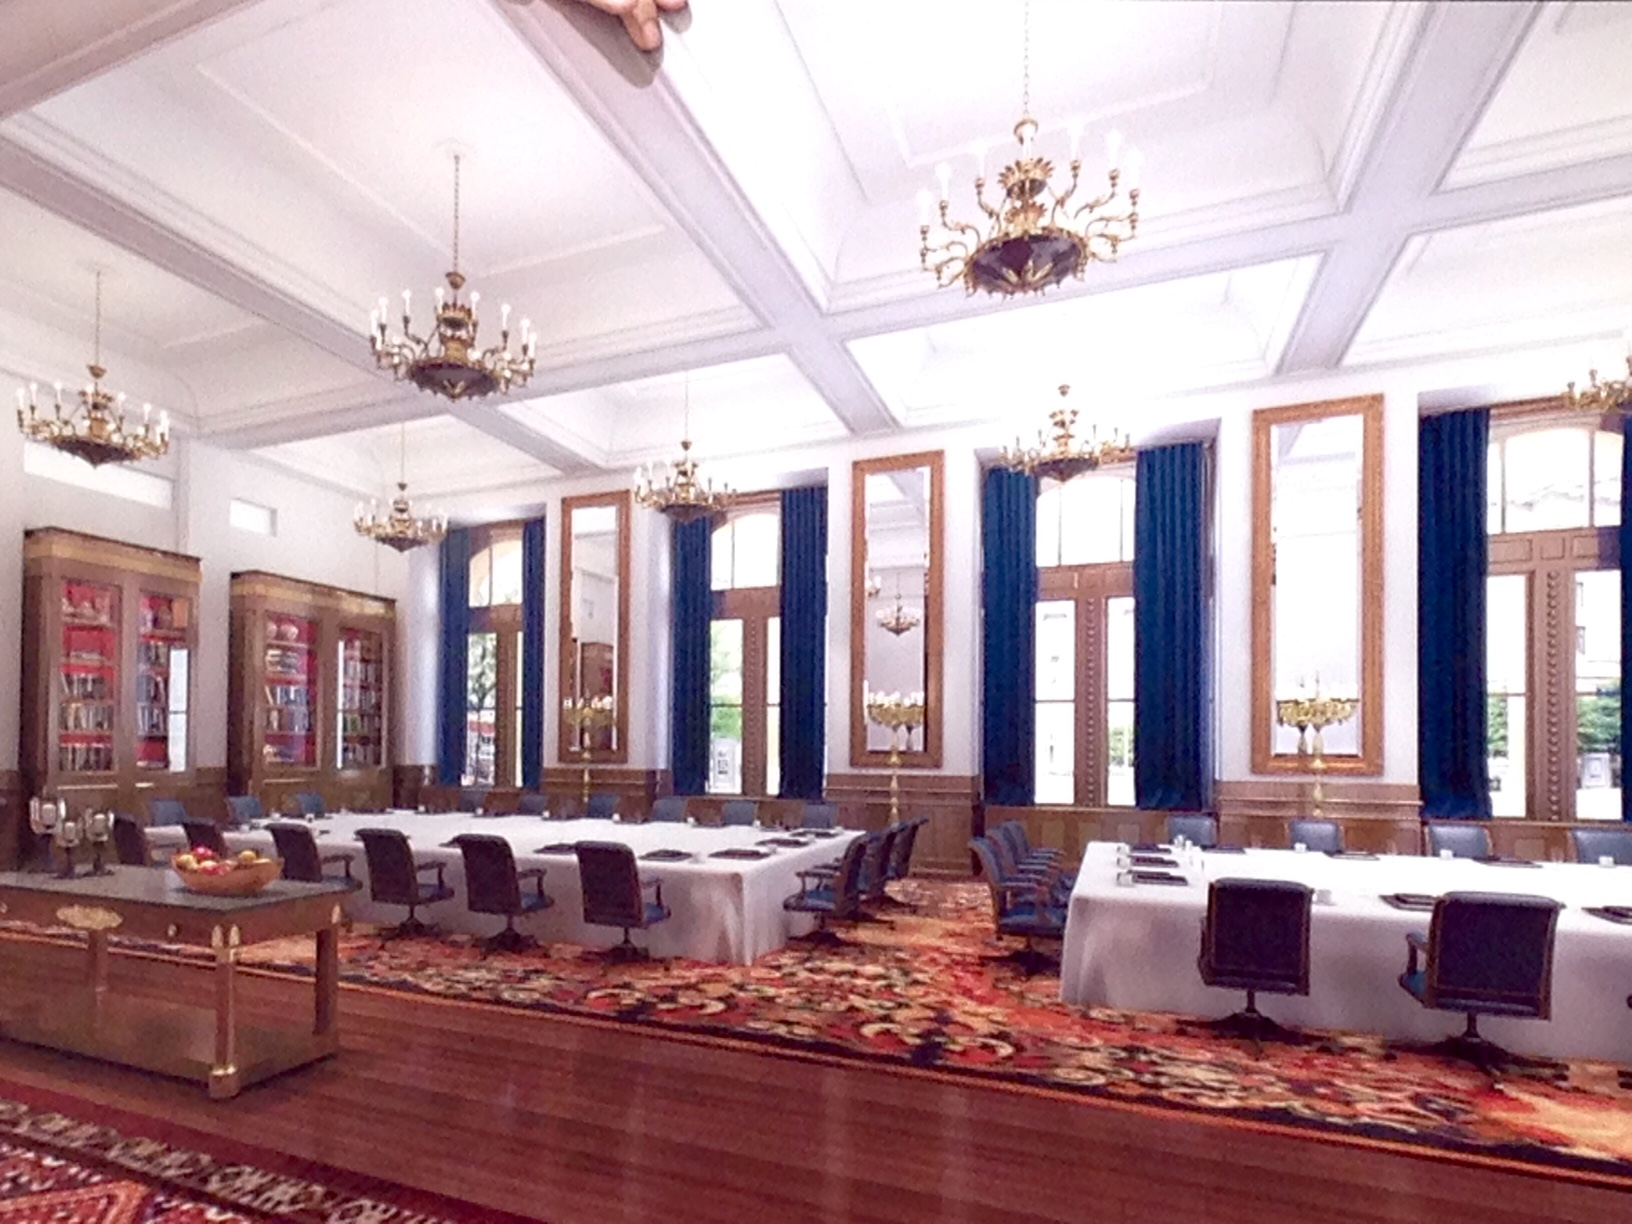 An artist's rendering of the ballroom that Donald Trump says will be the largest in the Washington area. (WTOP/Megan Cloherty)